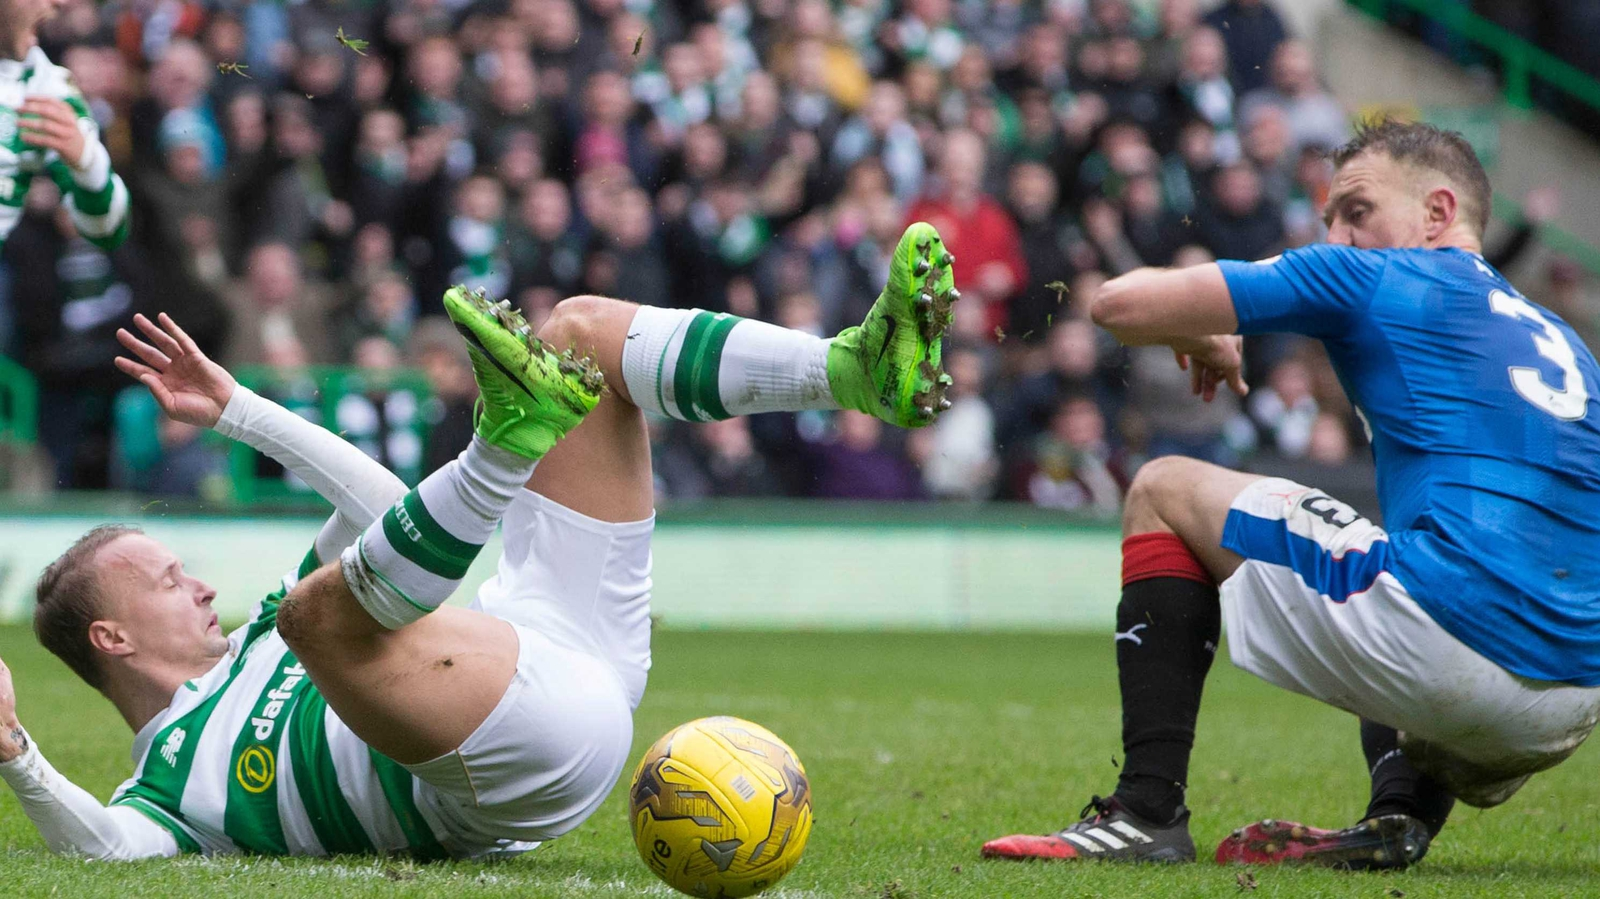 Celtic boss Rodgers laments late penalty decision